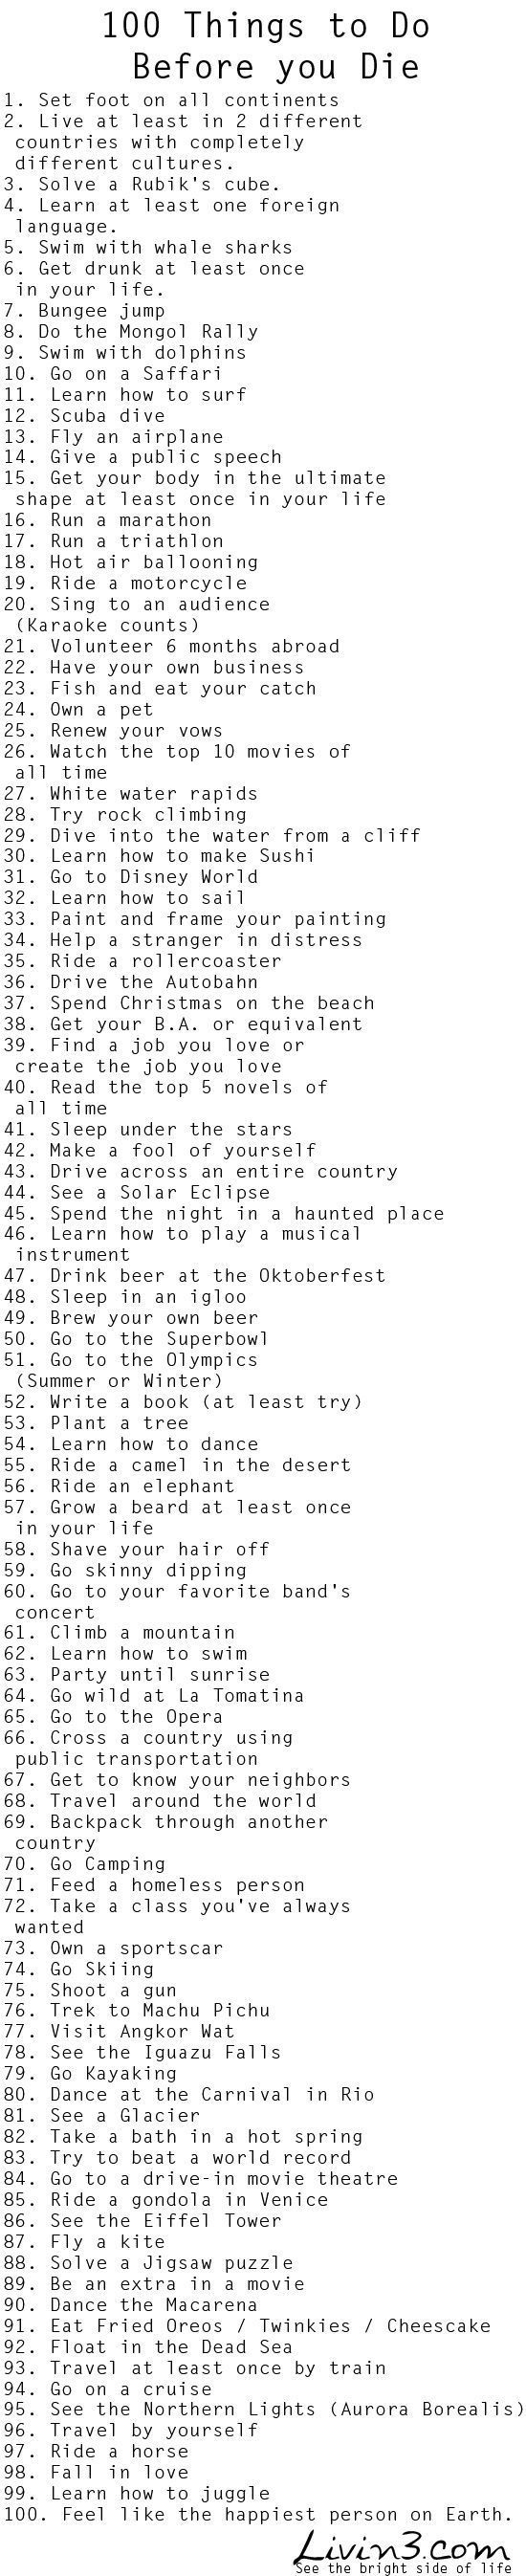 """100 Things to do before I die """"Bucket List"""" Live Your Life. Ya know, except the beard one... by Paola114 